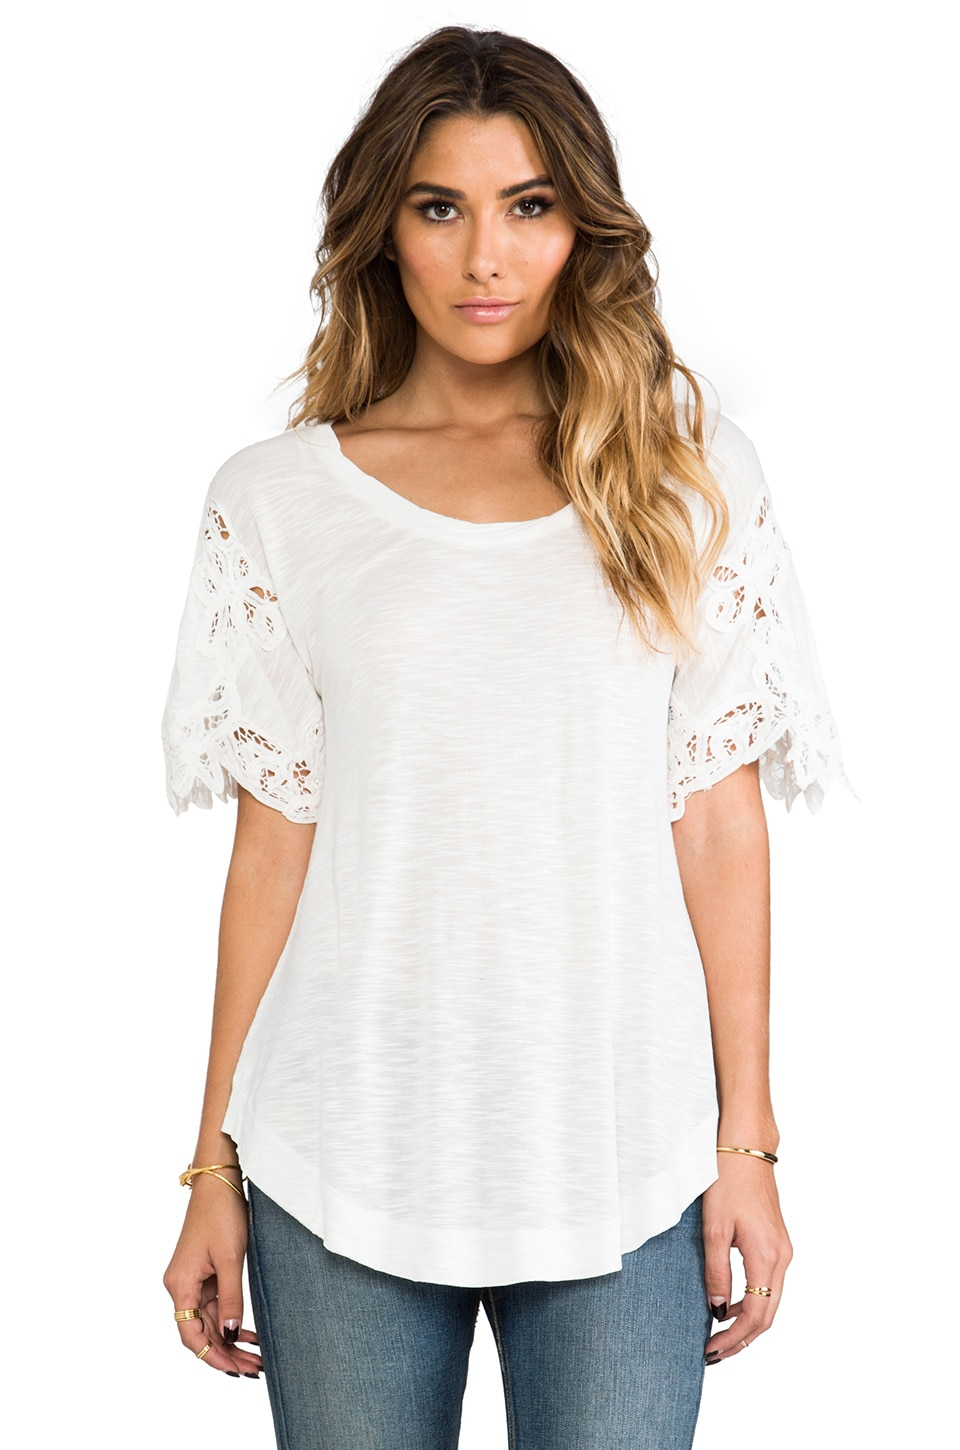 Free People Mallary's Battenberg Tee in Snow